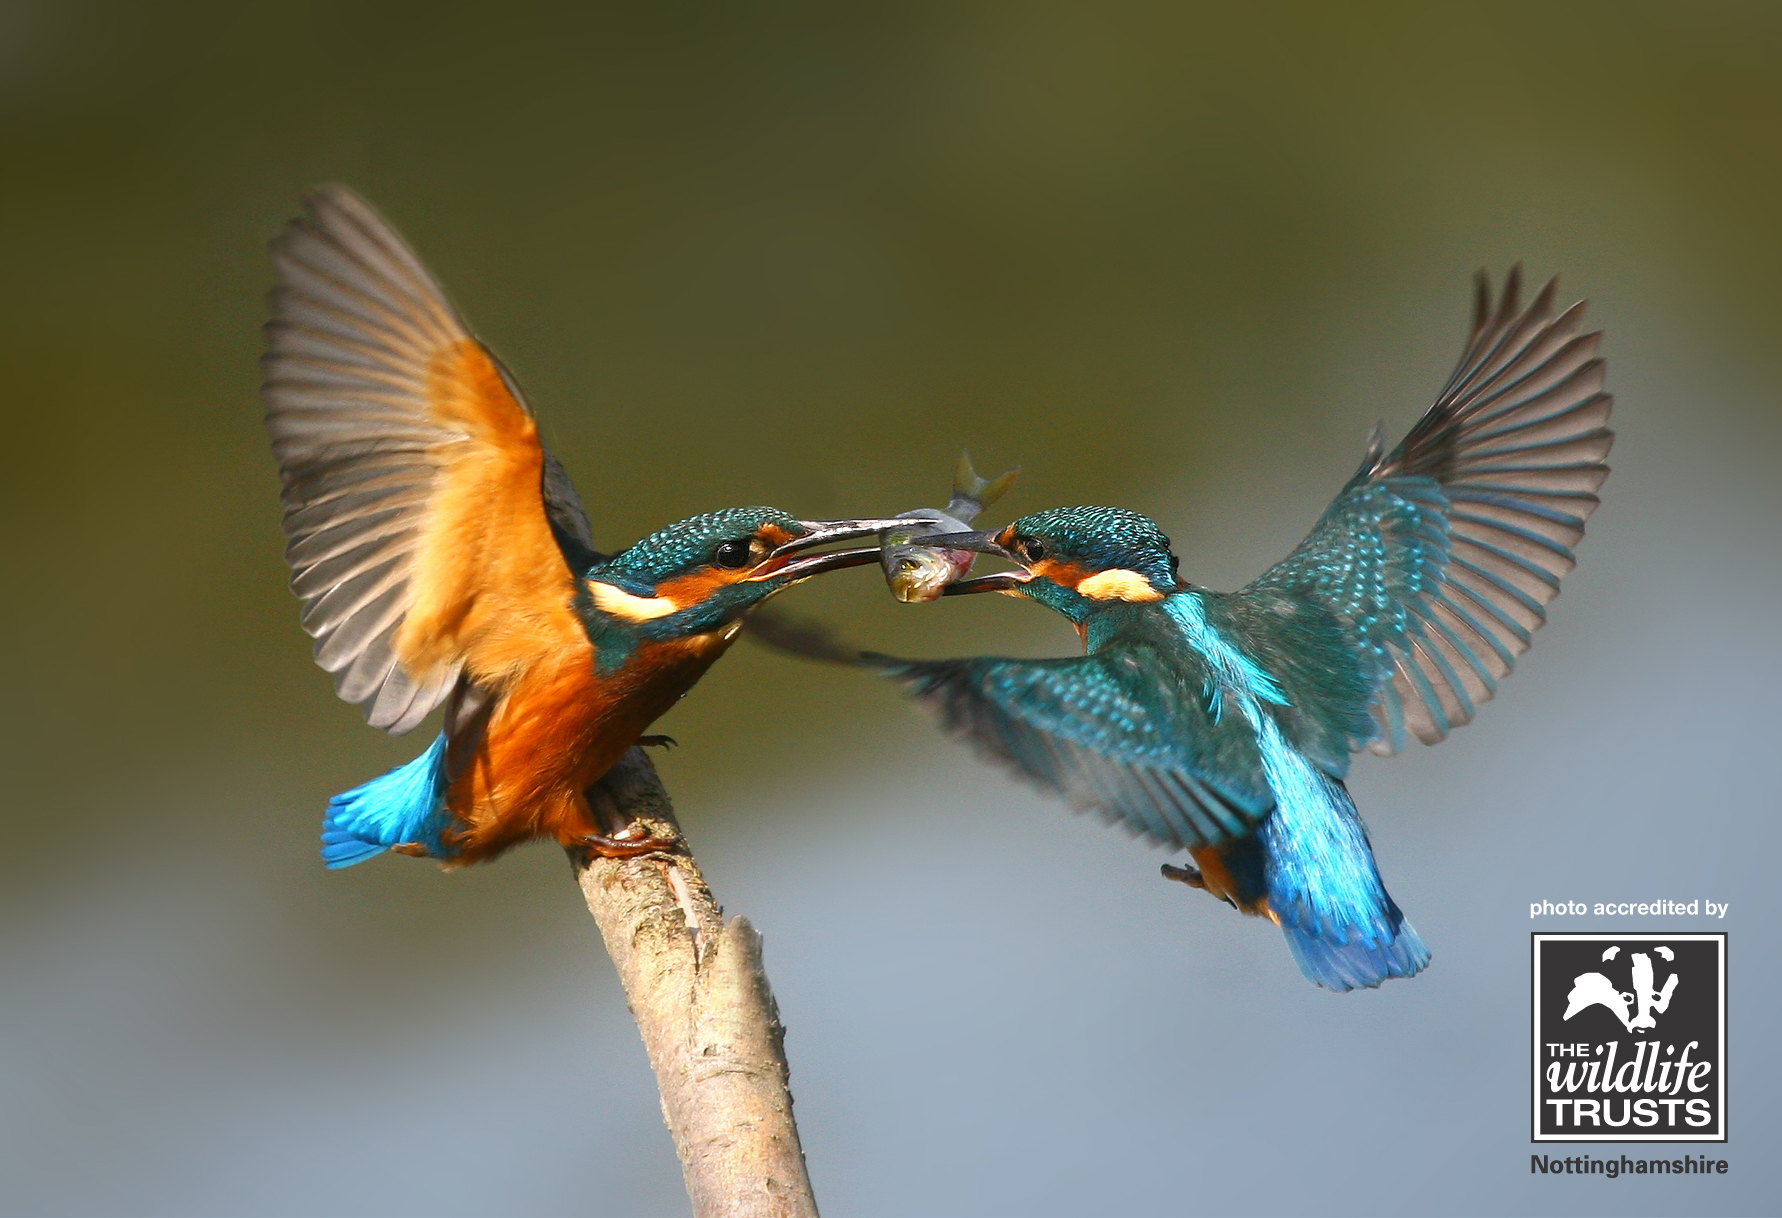 Kingfisher - Nottinghamshire Wildlife Trust